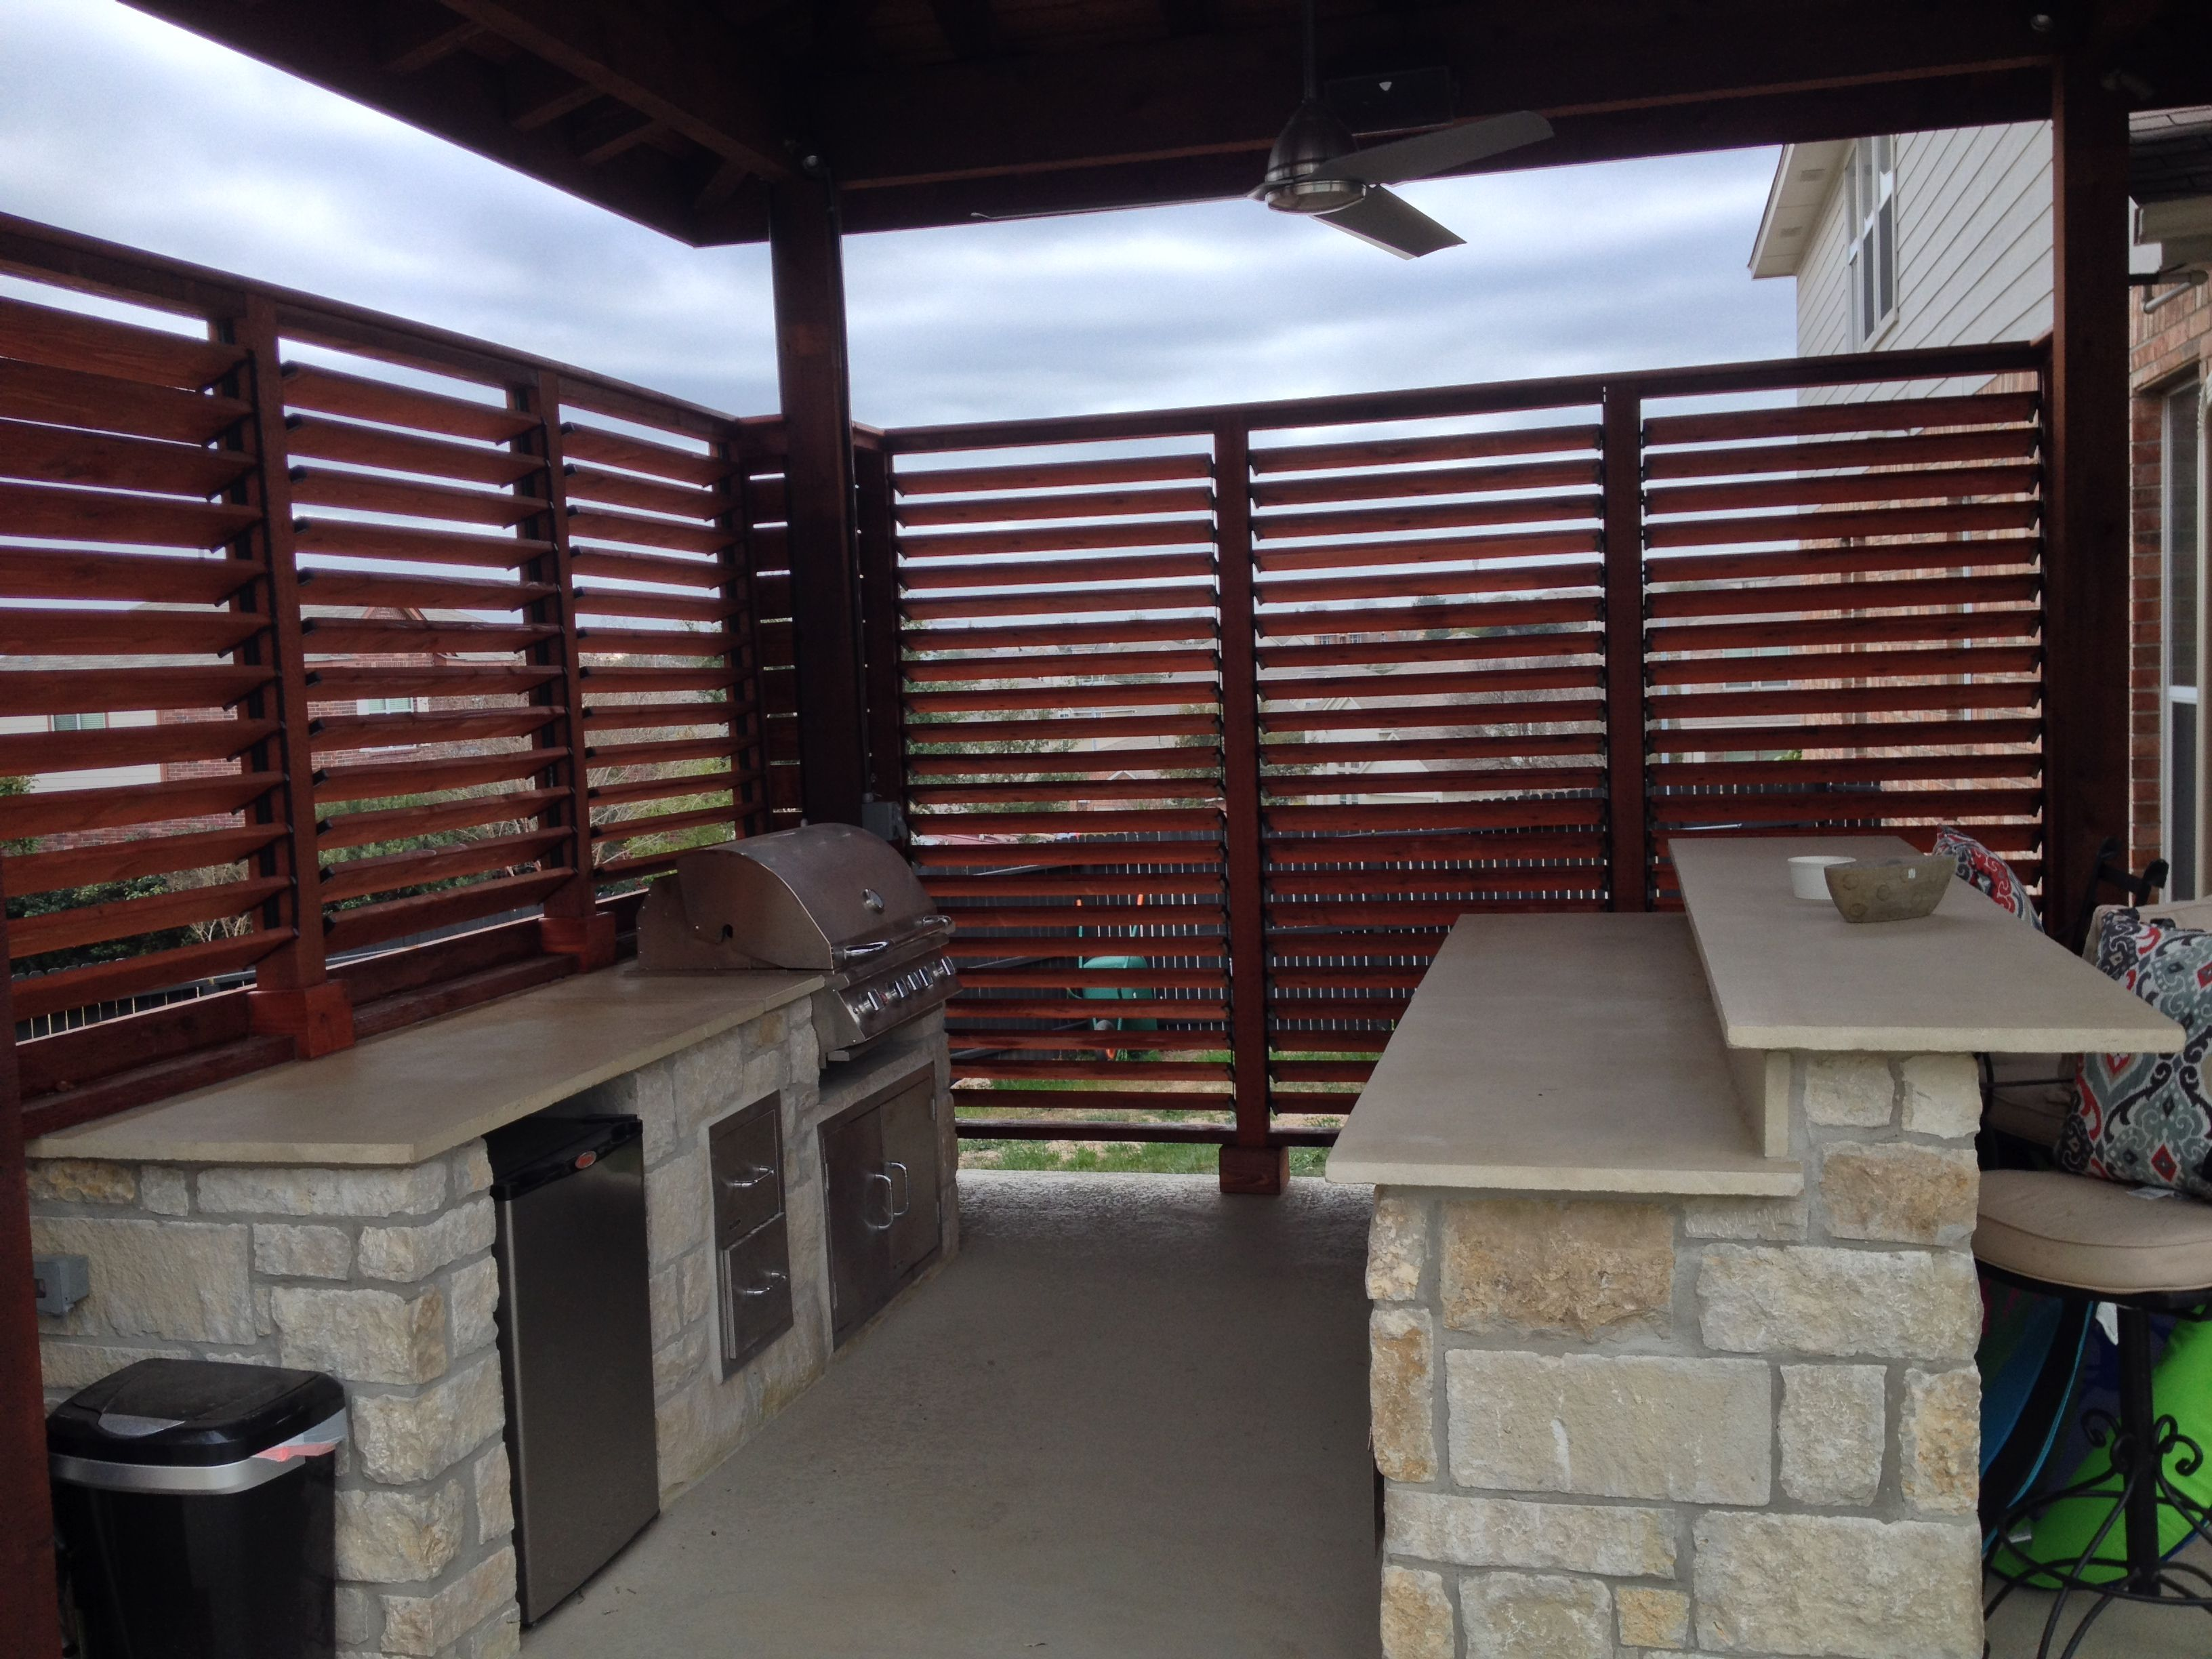 Beautiful Diy Outdoor Backyard Bbq Flex Fence Project By Darrell From San Antonio Texas With Louvered Panels Pergola Outdoor Shutters Fence Design